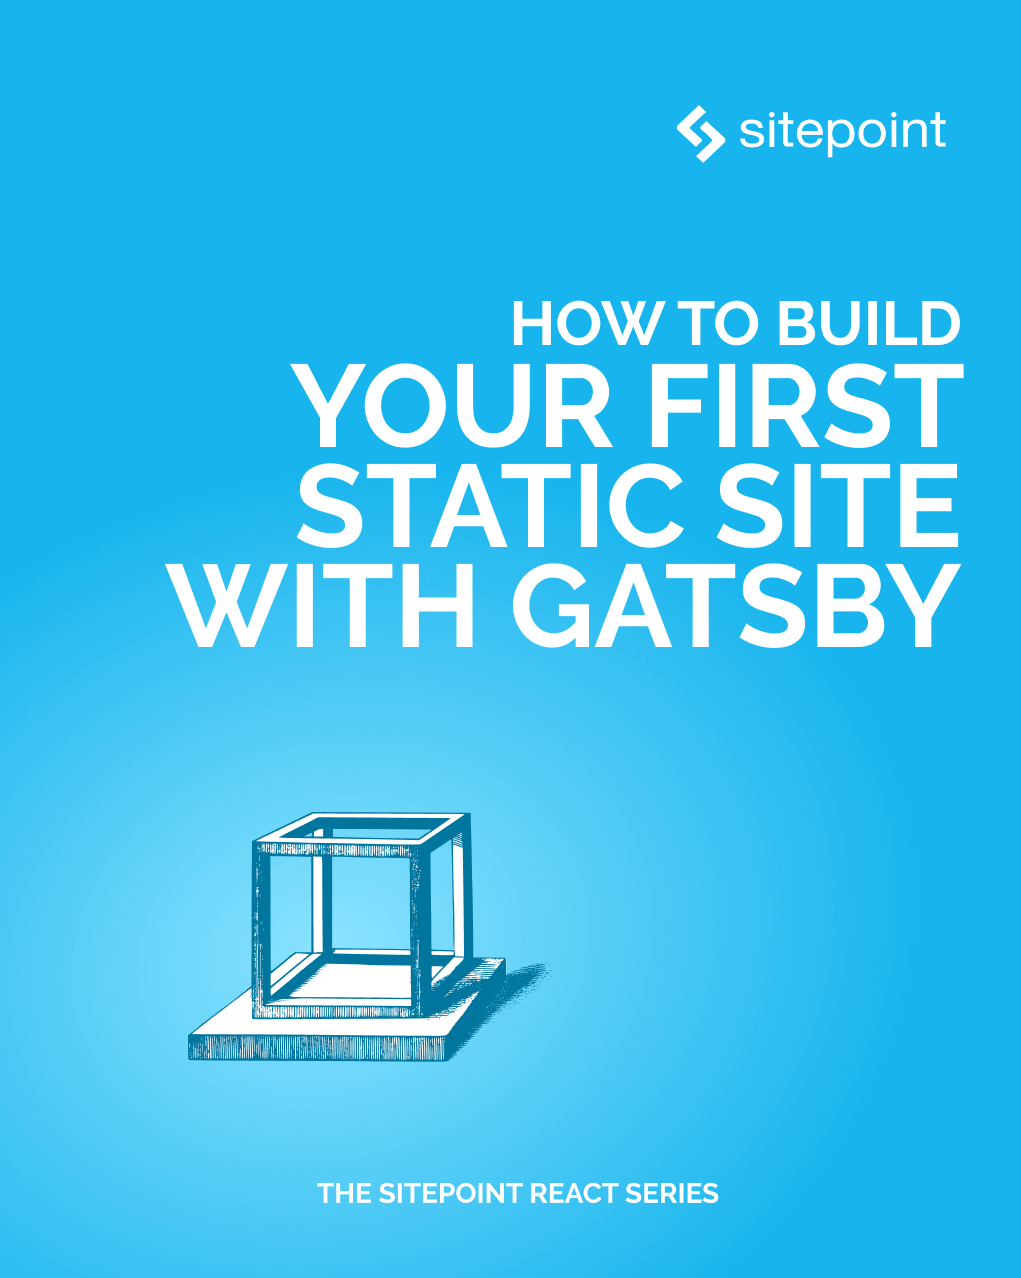 How to Build Your First Static Site with Gatsby